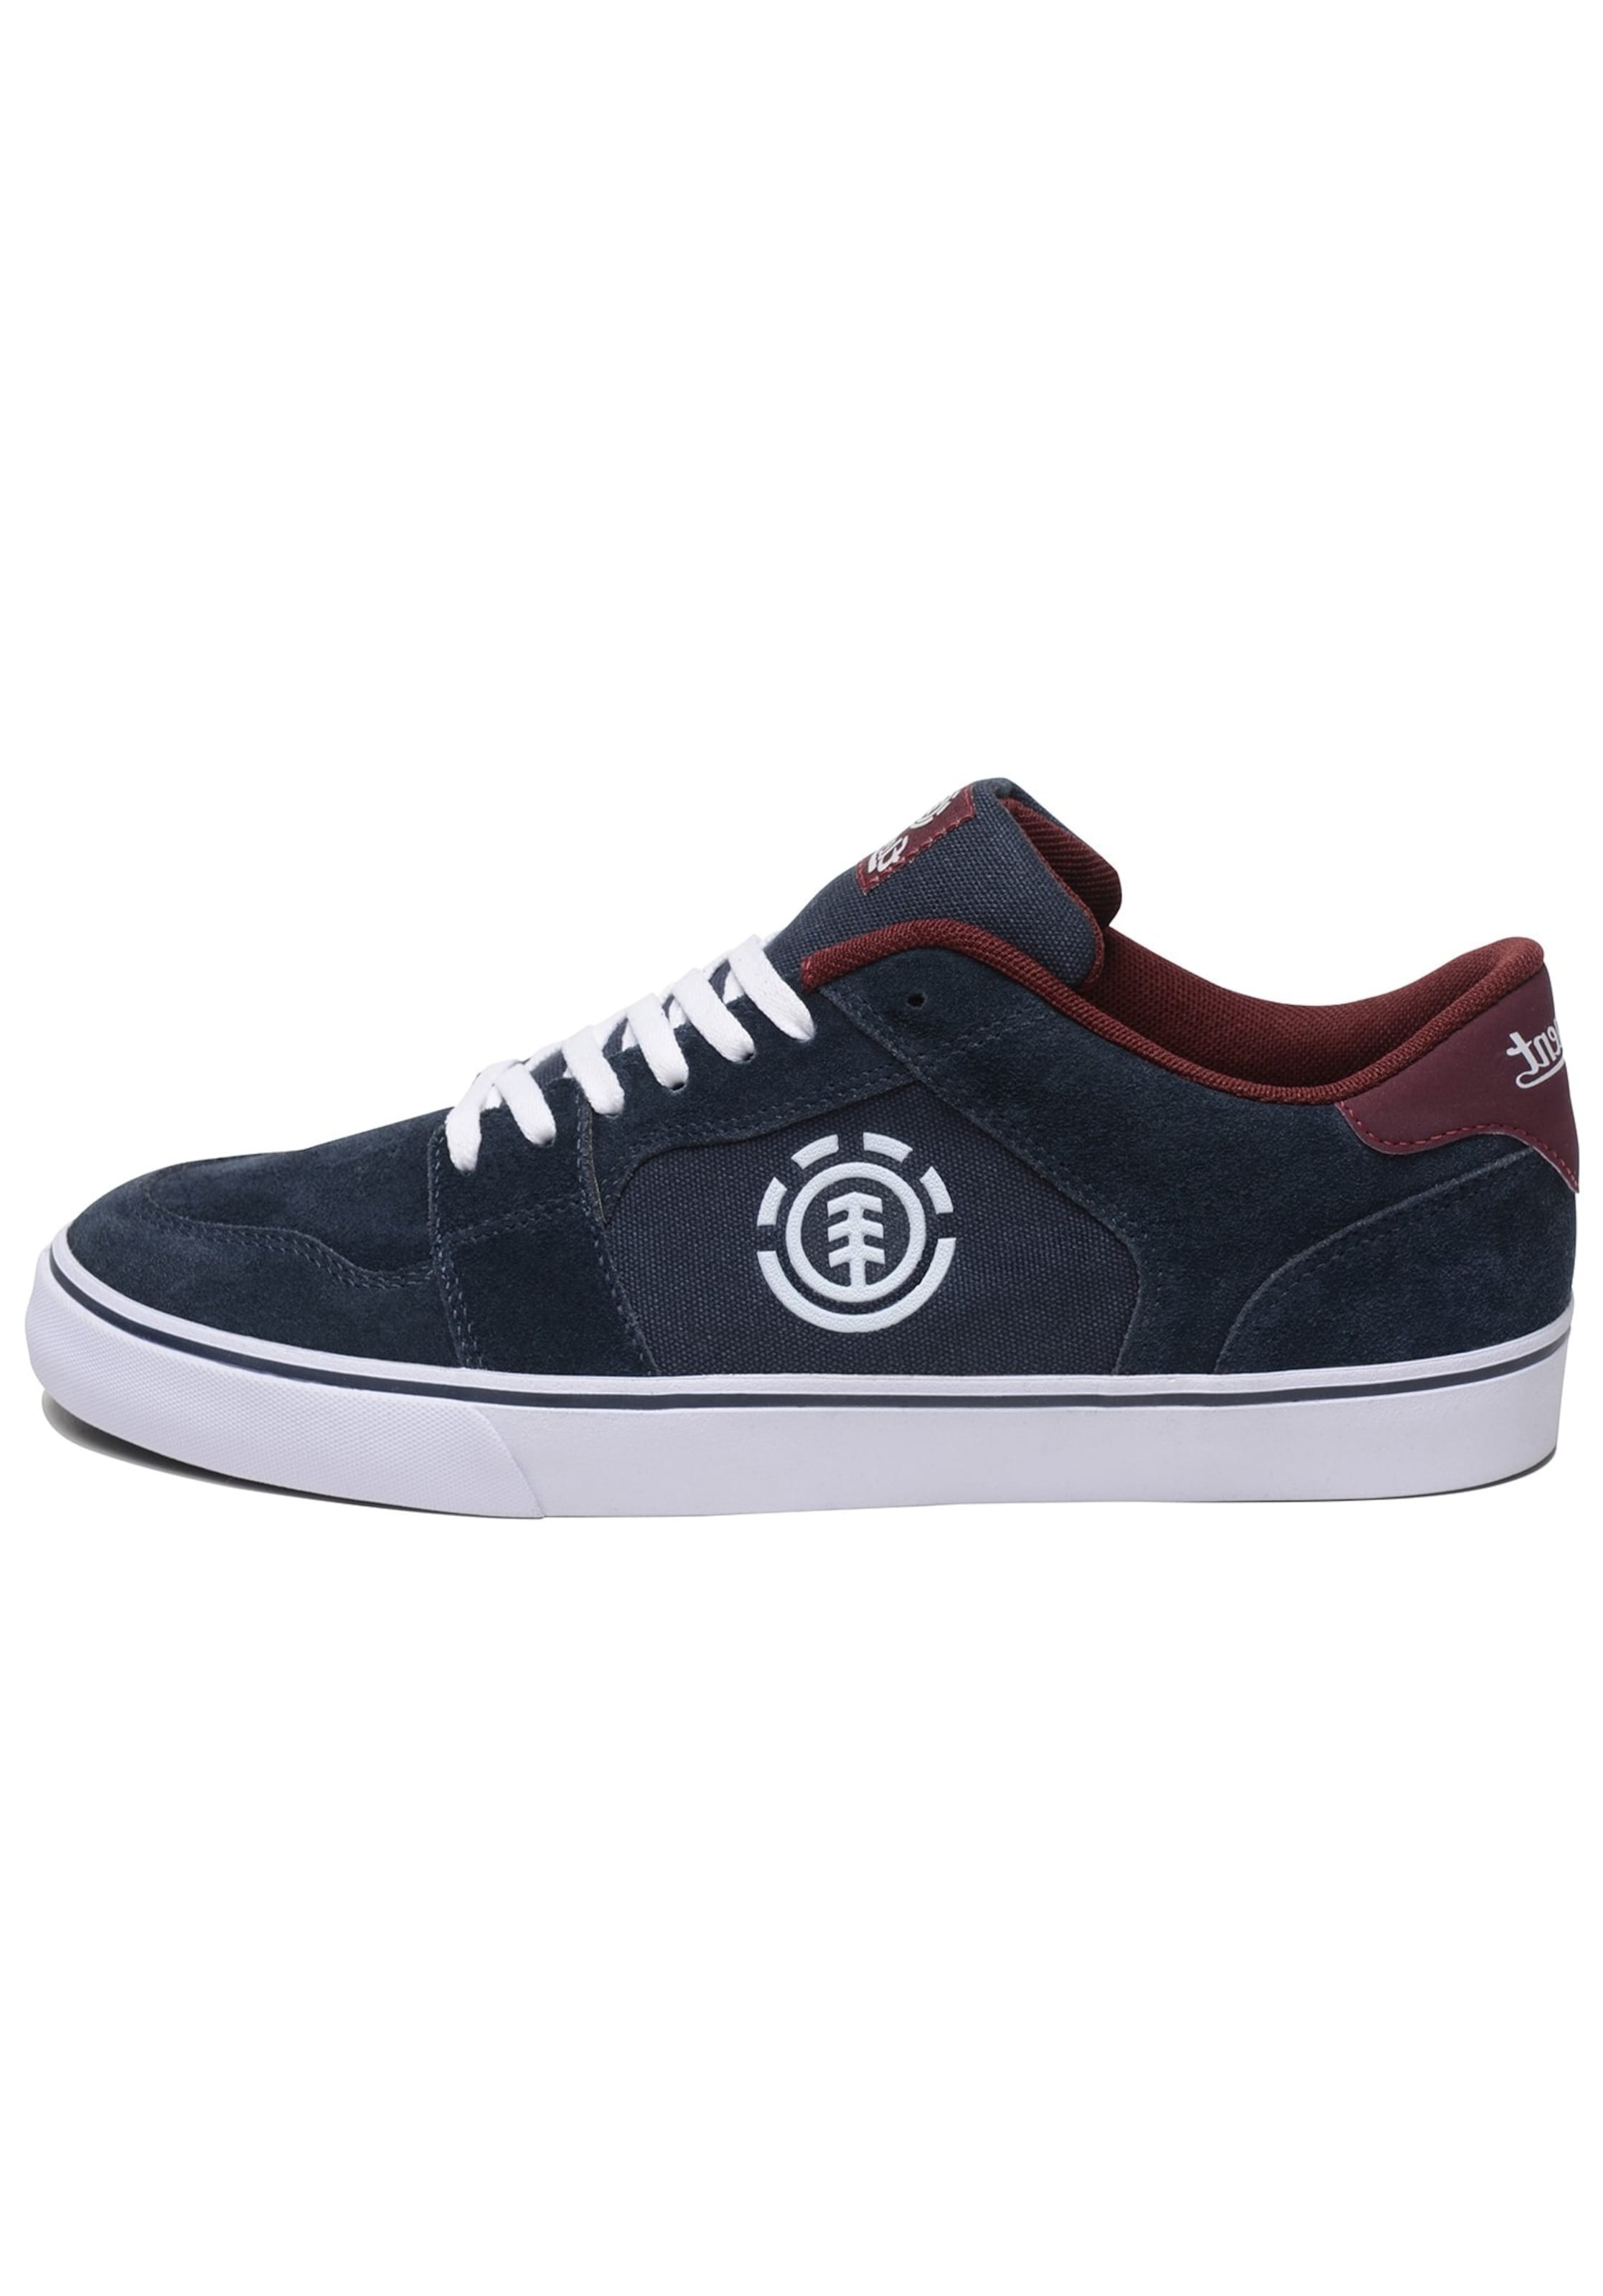 ELEMENT  Heatley  Sneaker